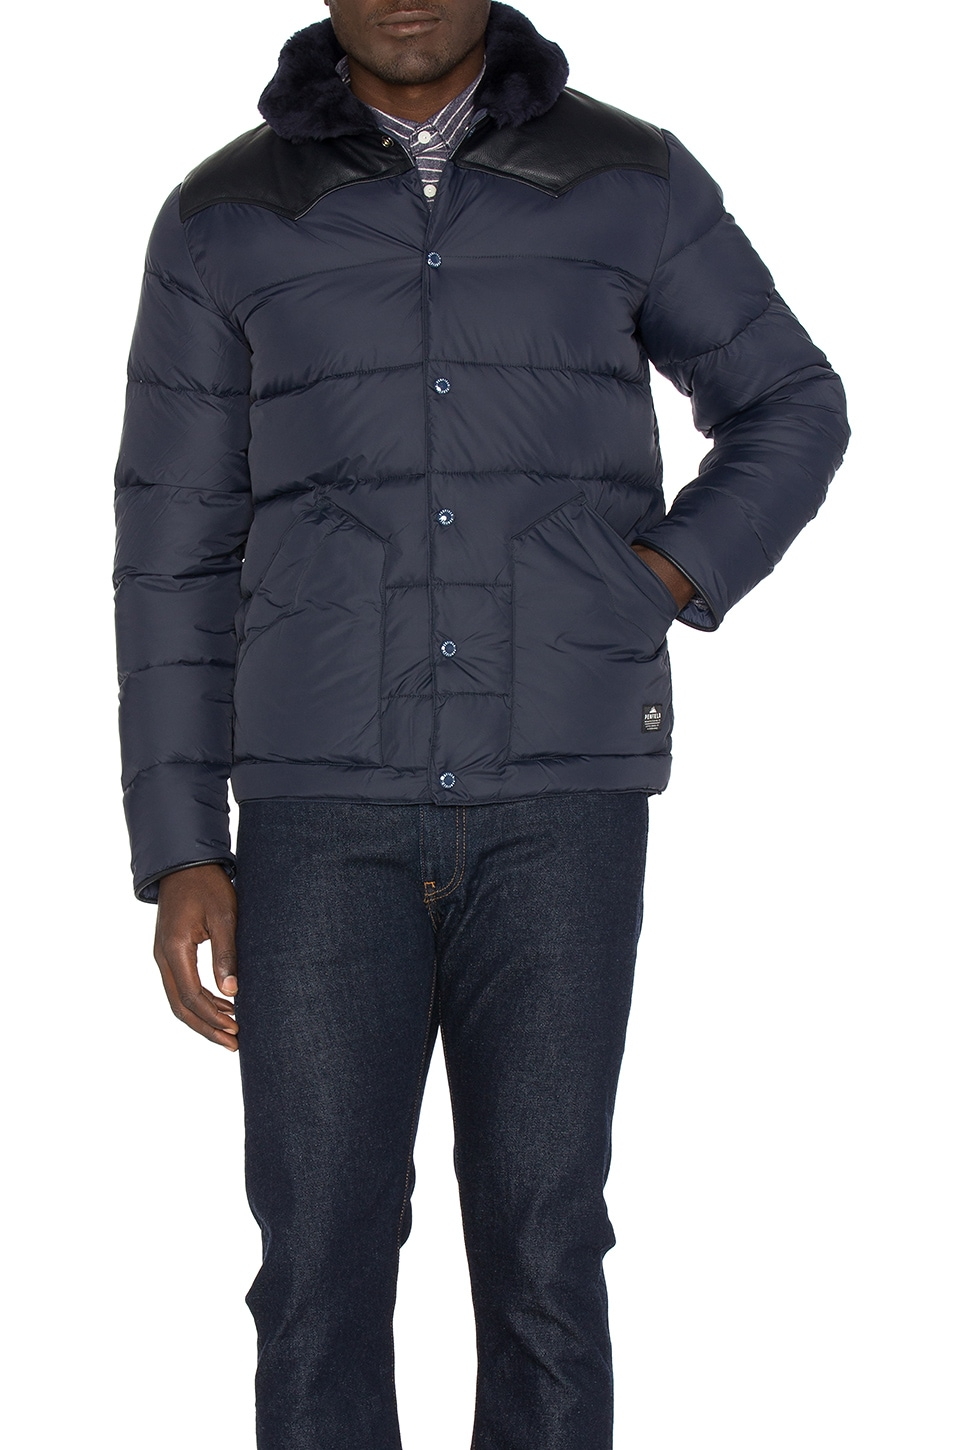 Rockwool Leather and Shearling Yoke Down Jacket by Penfield